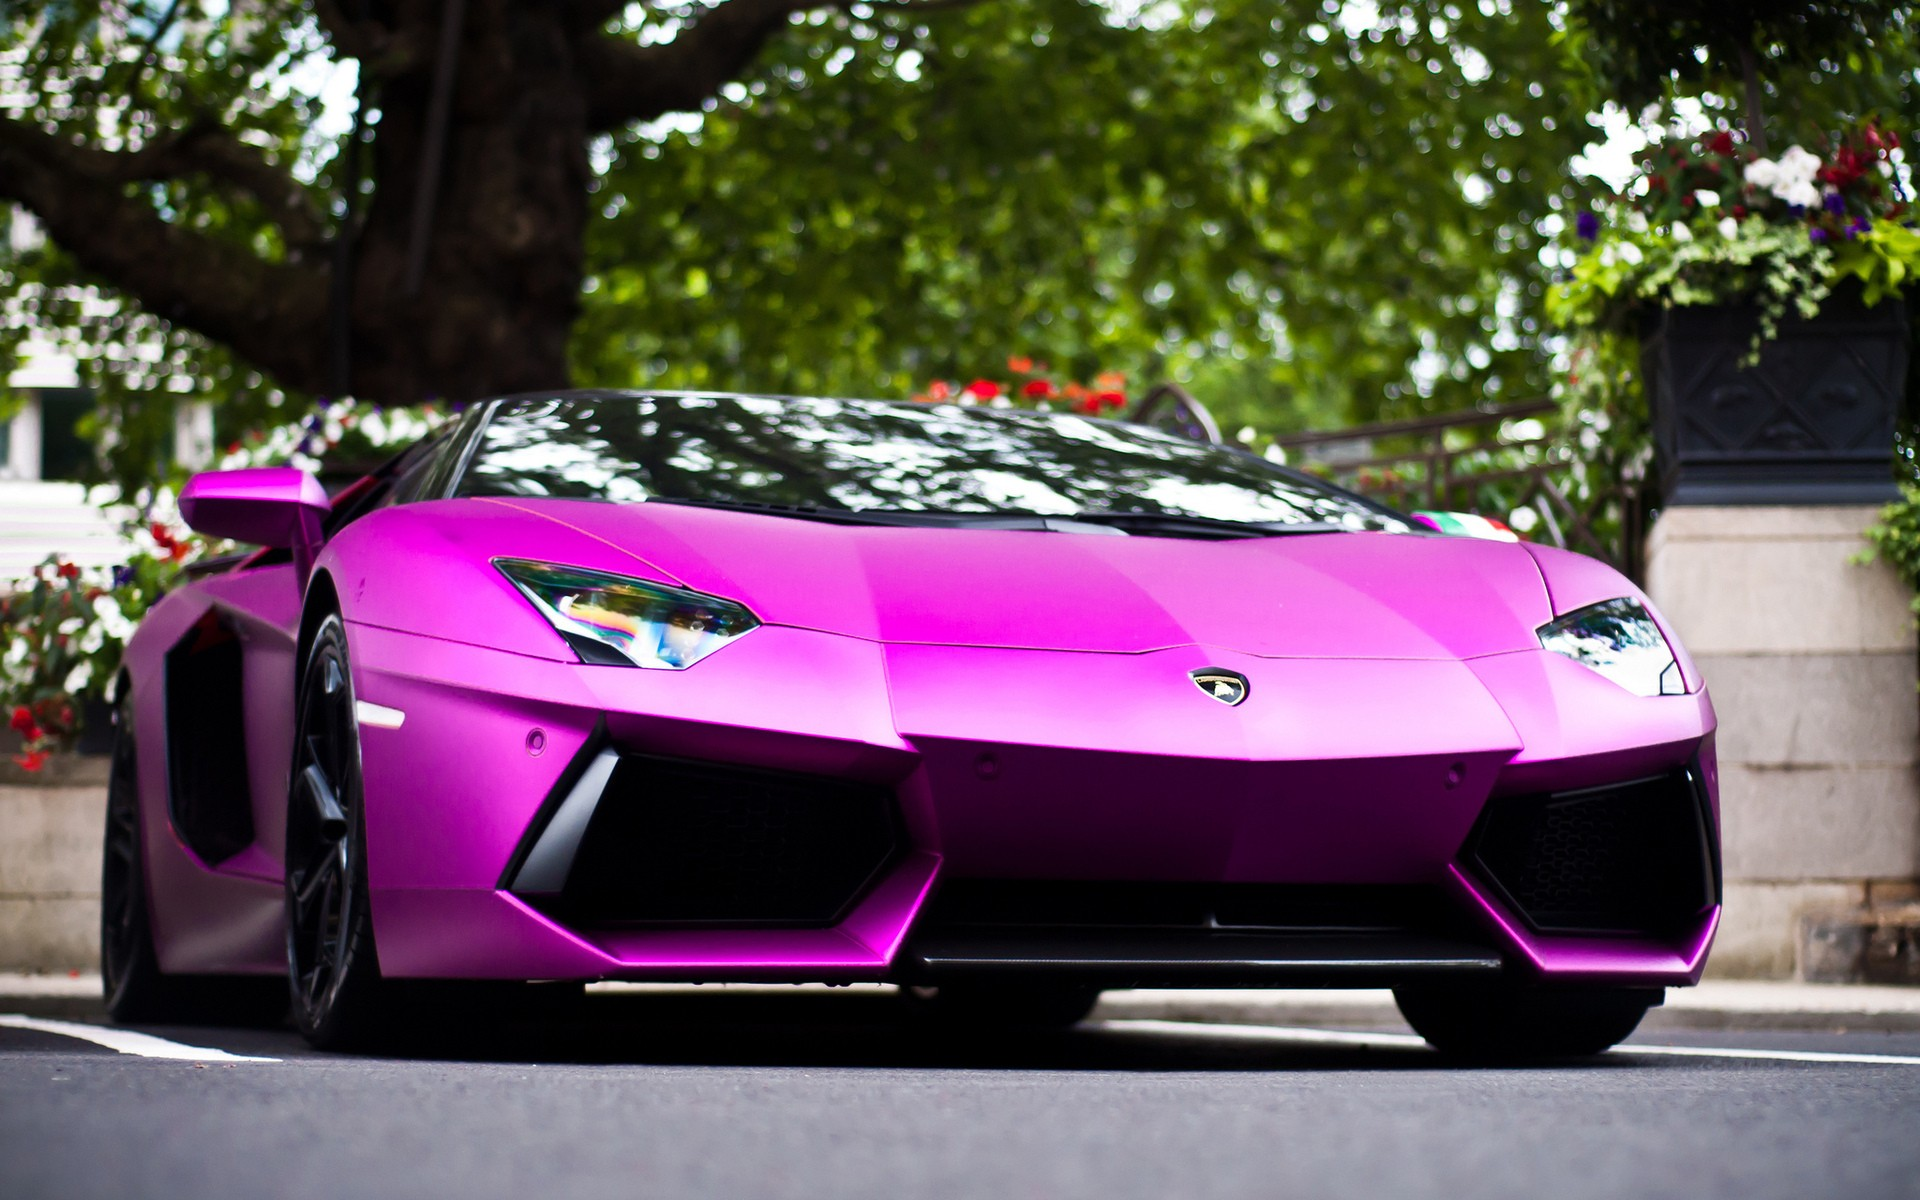 Google themes of cars